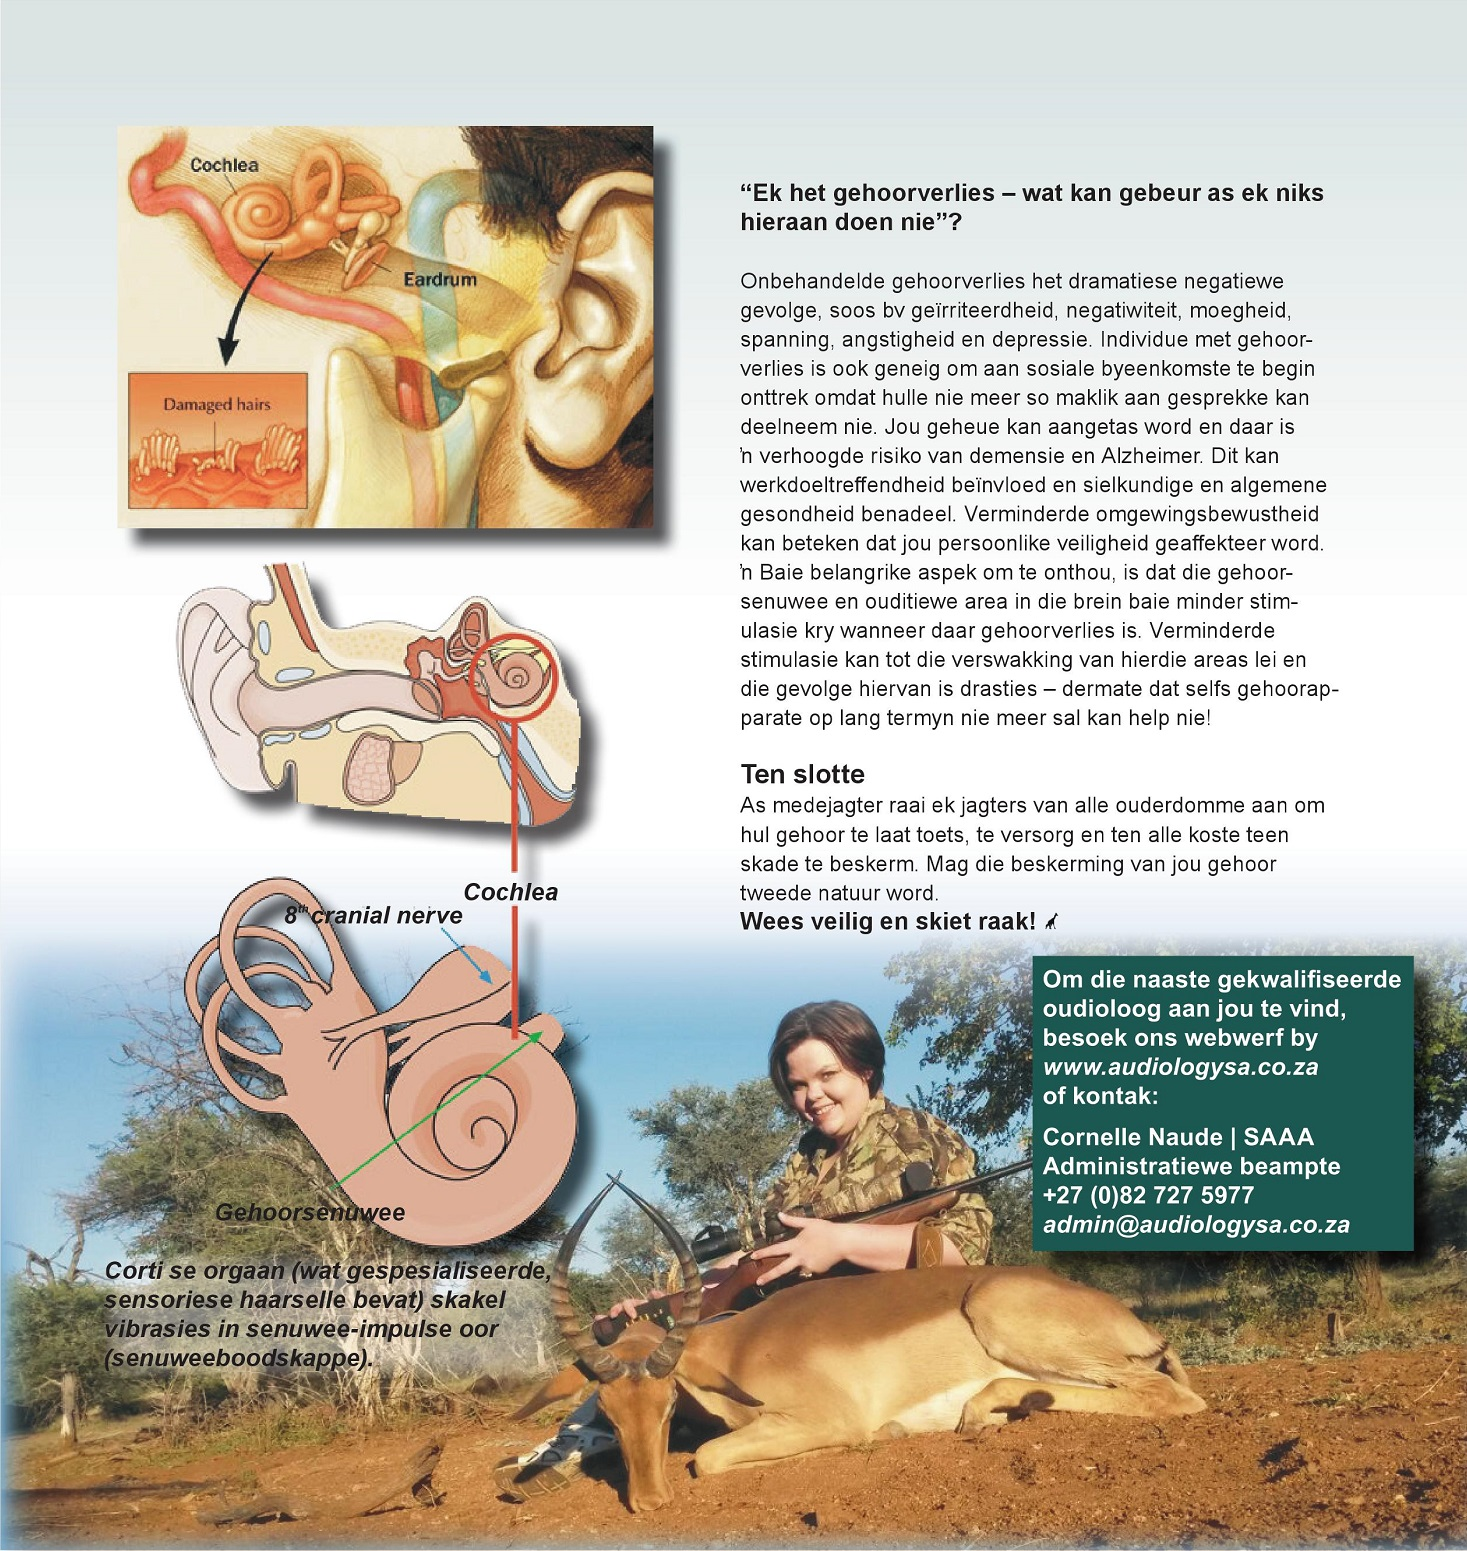 YVDW Audiology Wild en Jag Magazine Page 3, hearing test